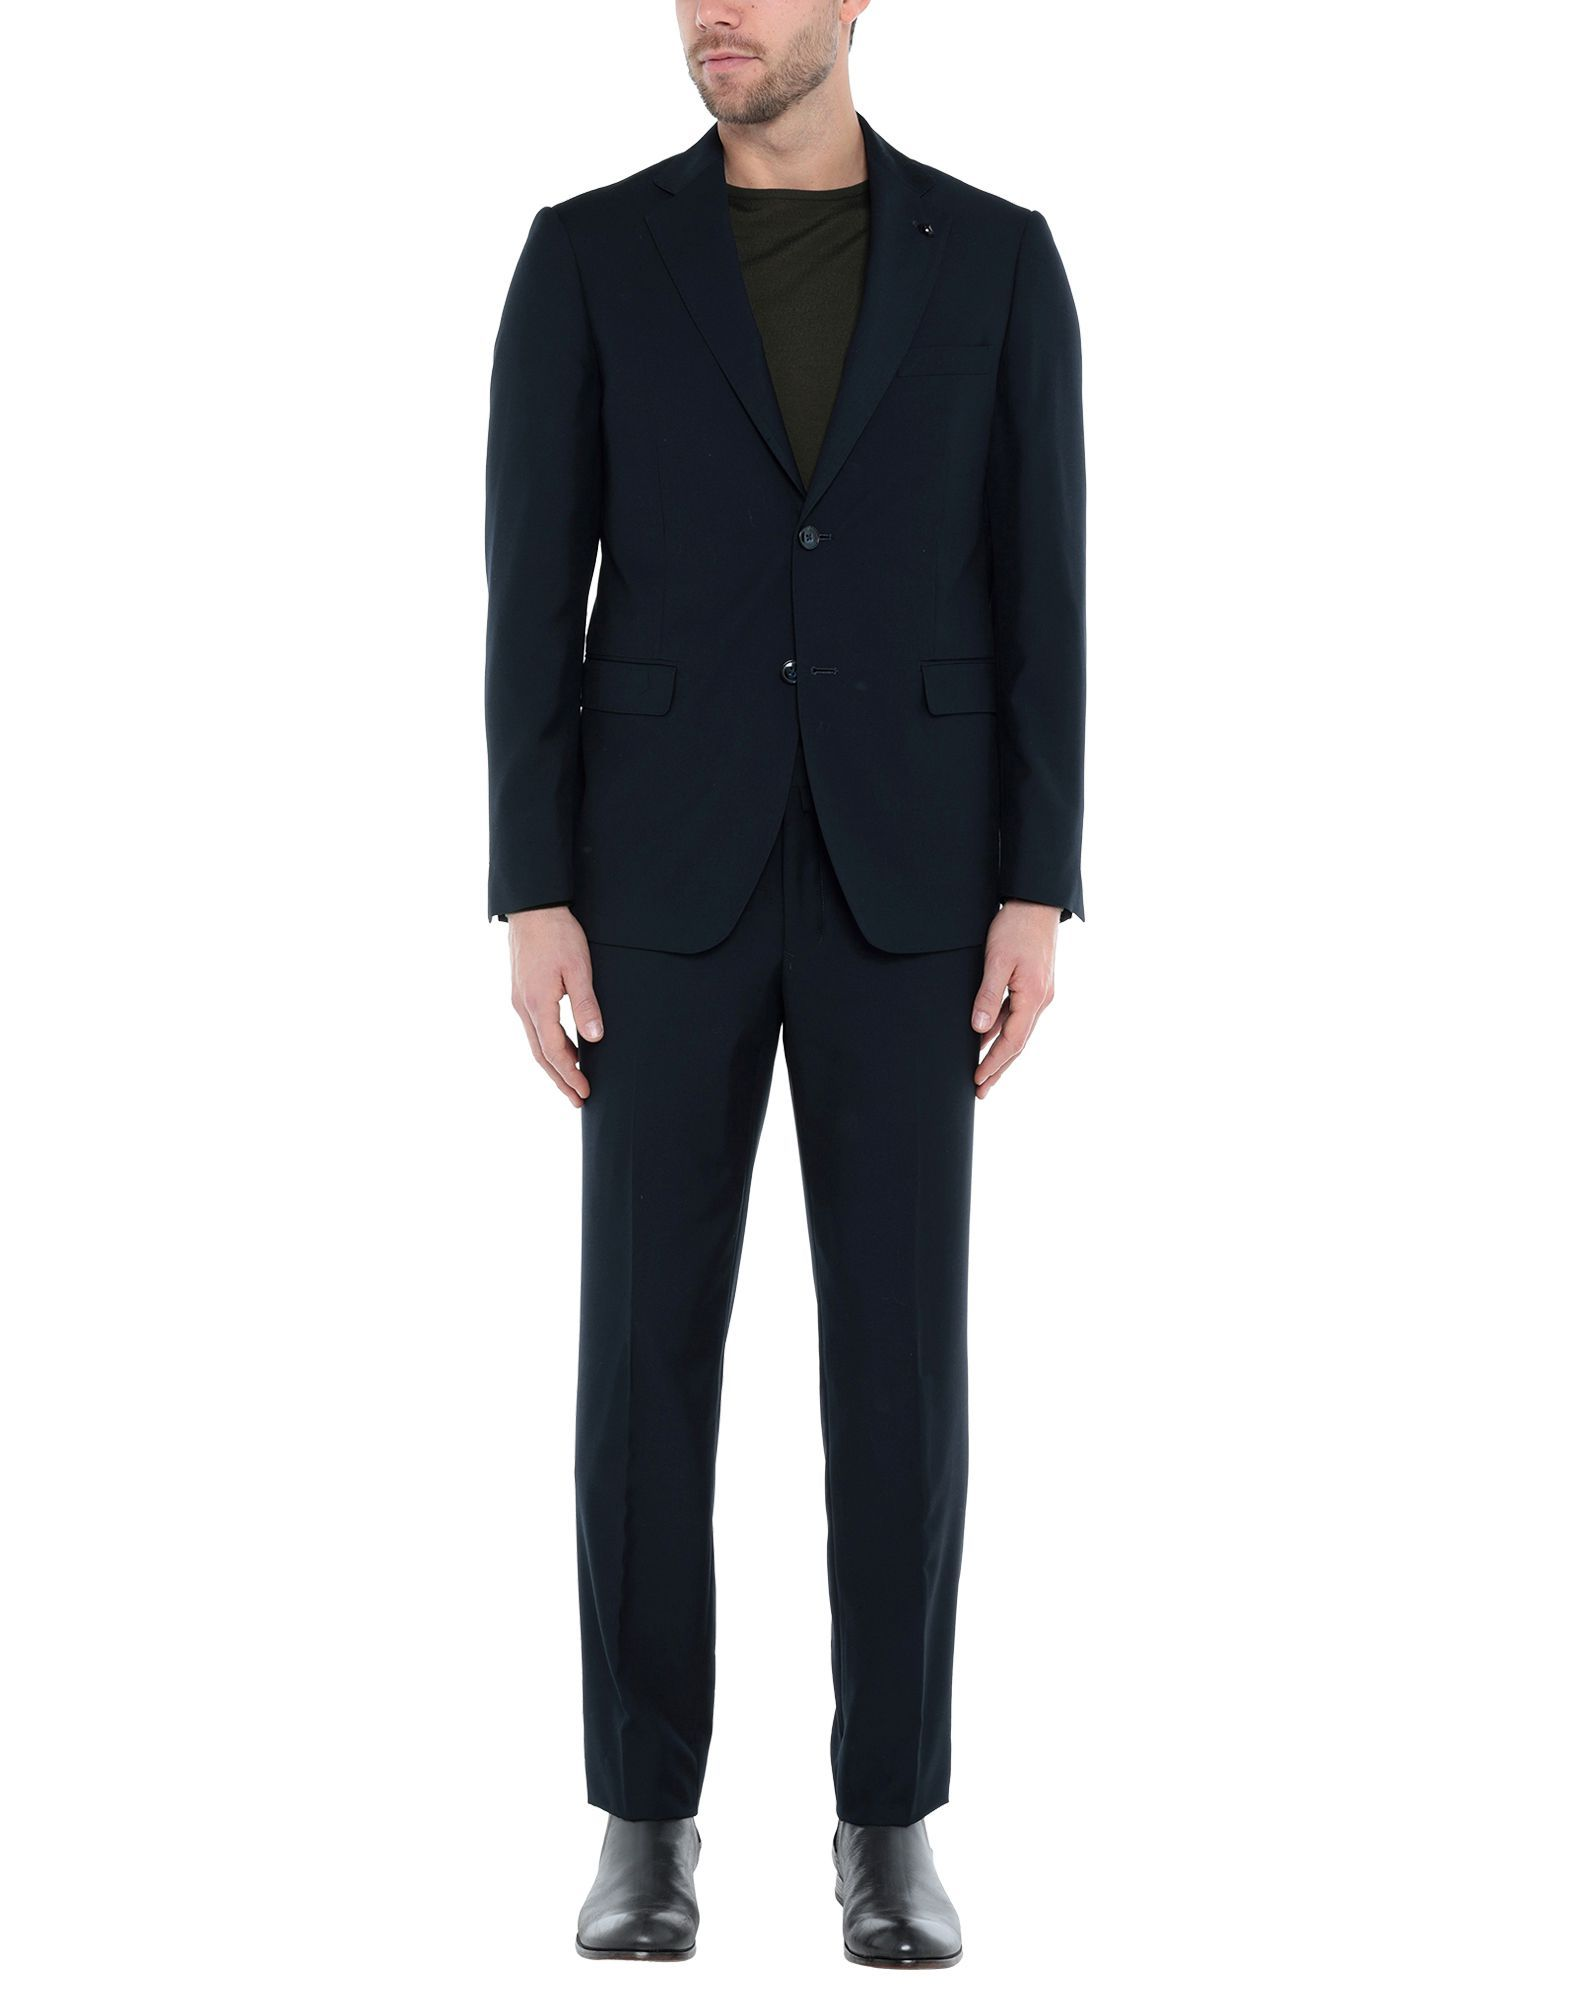 SUITS AND JACKETS Domenico Tagliente Blue Man Polyester